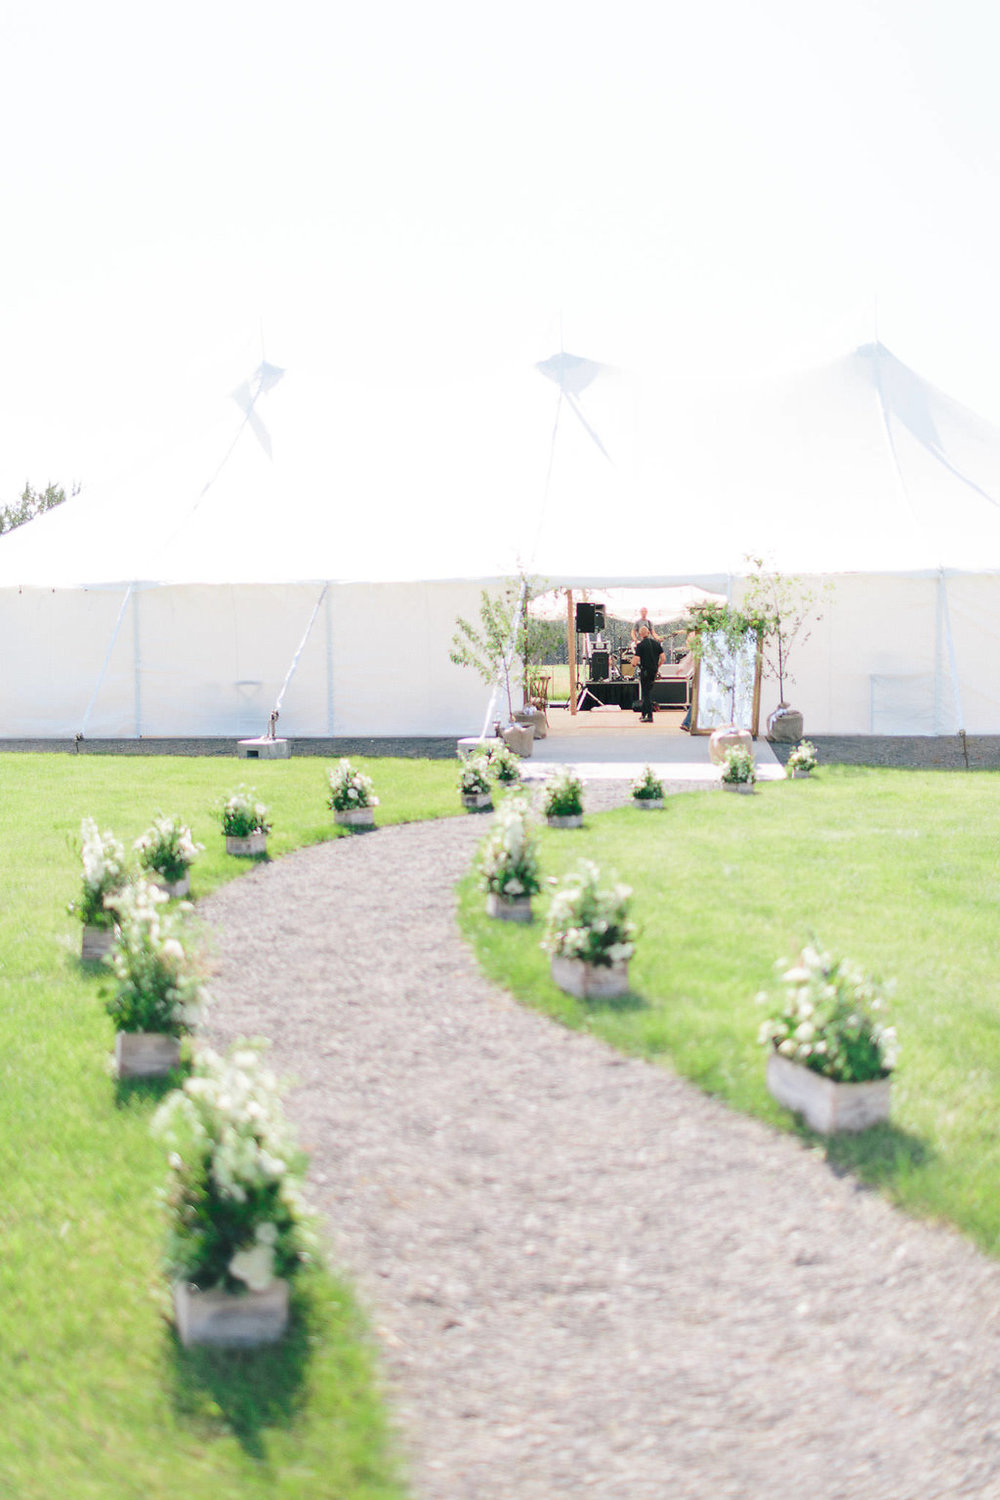 Our final task was waiting for the church team to arrive at the ranch with all of the decor that we planned on repurposing from the ceremony.  The church's living aisle became an enchanted walkway to the tent's entrance.